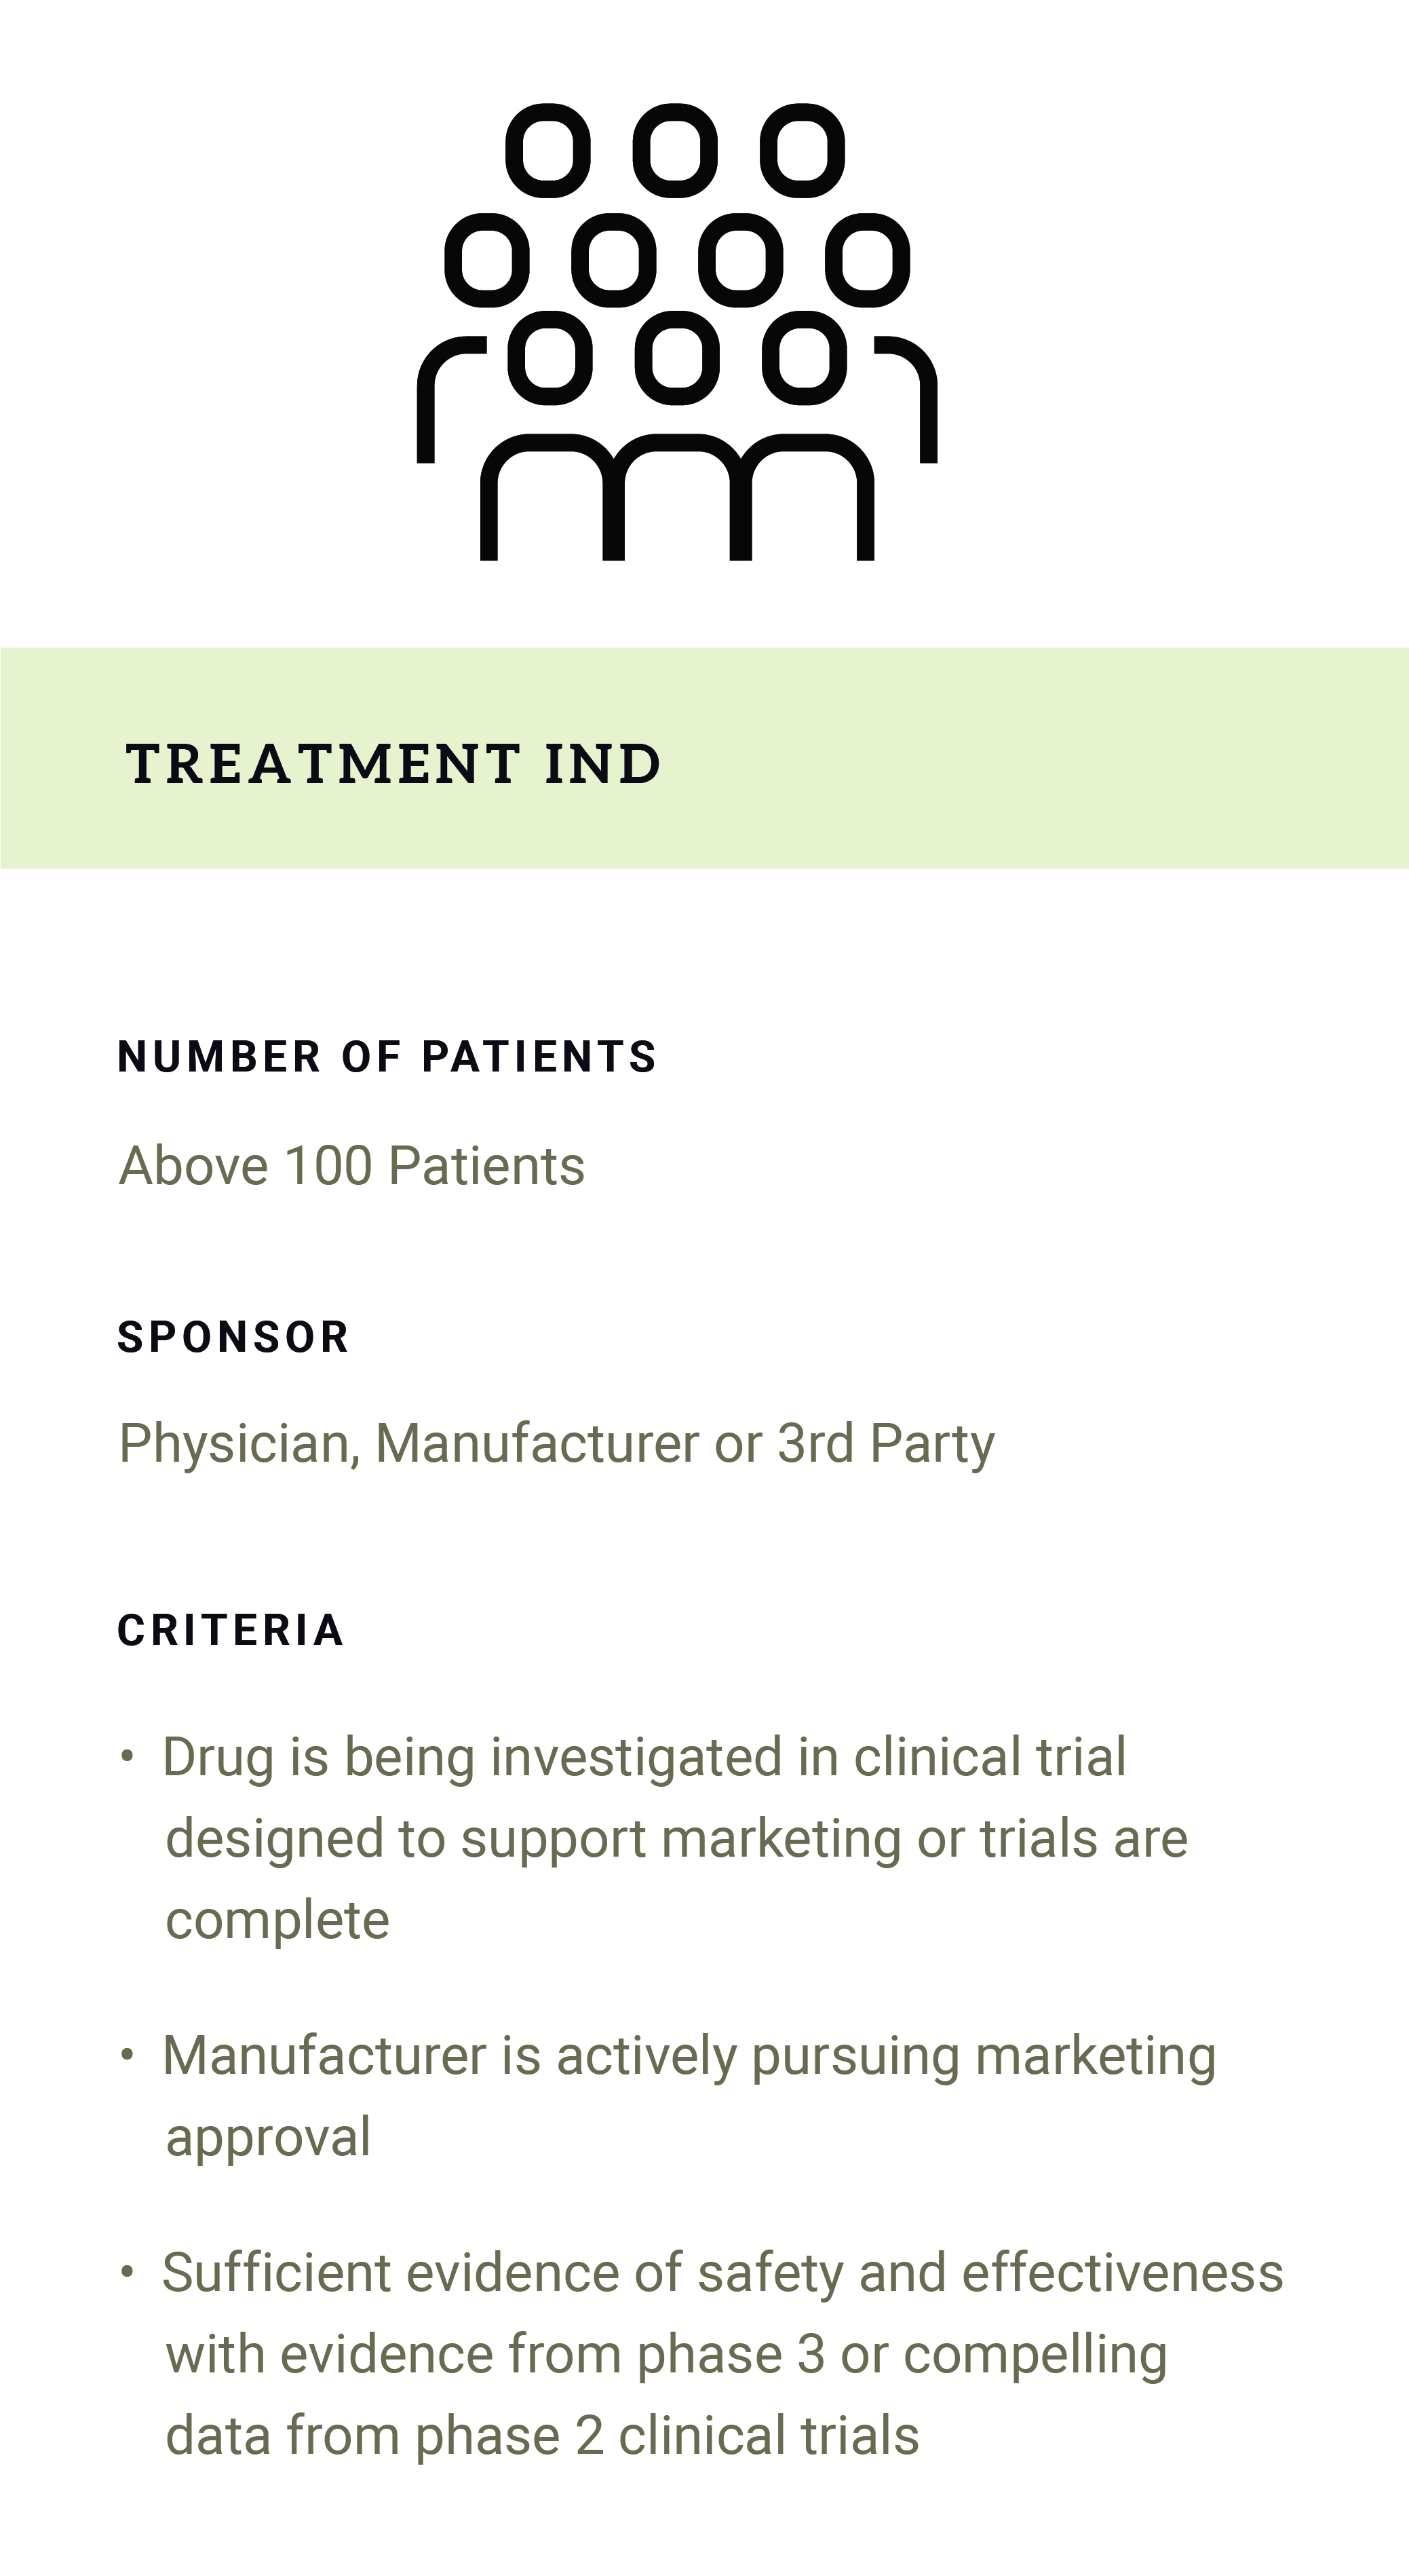 Treatment IND